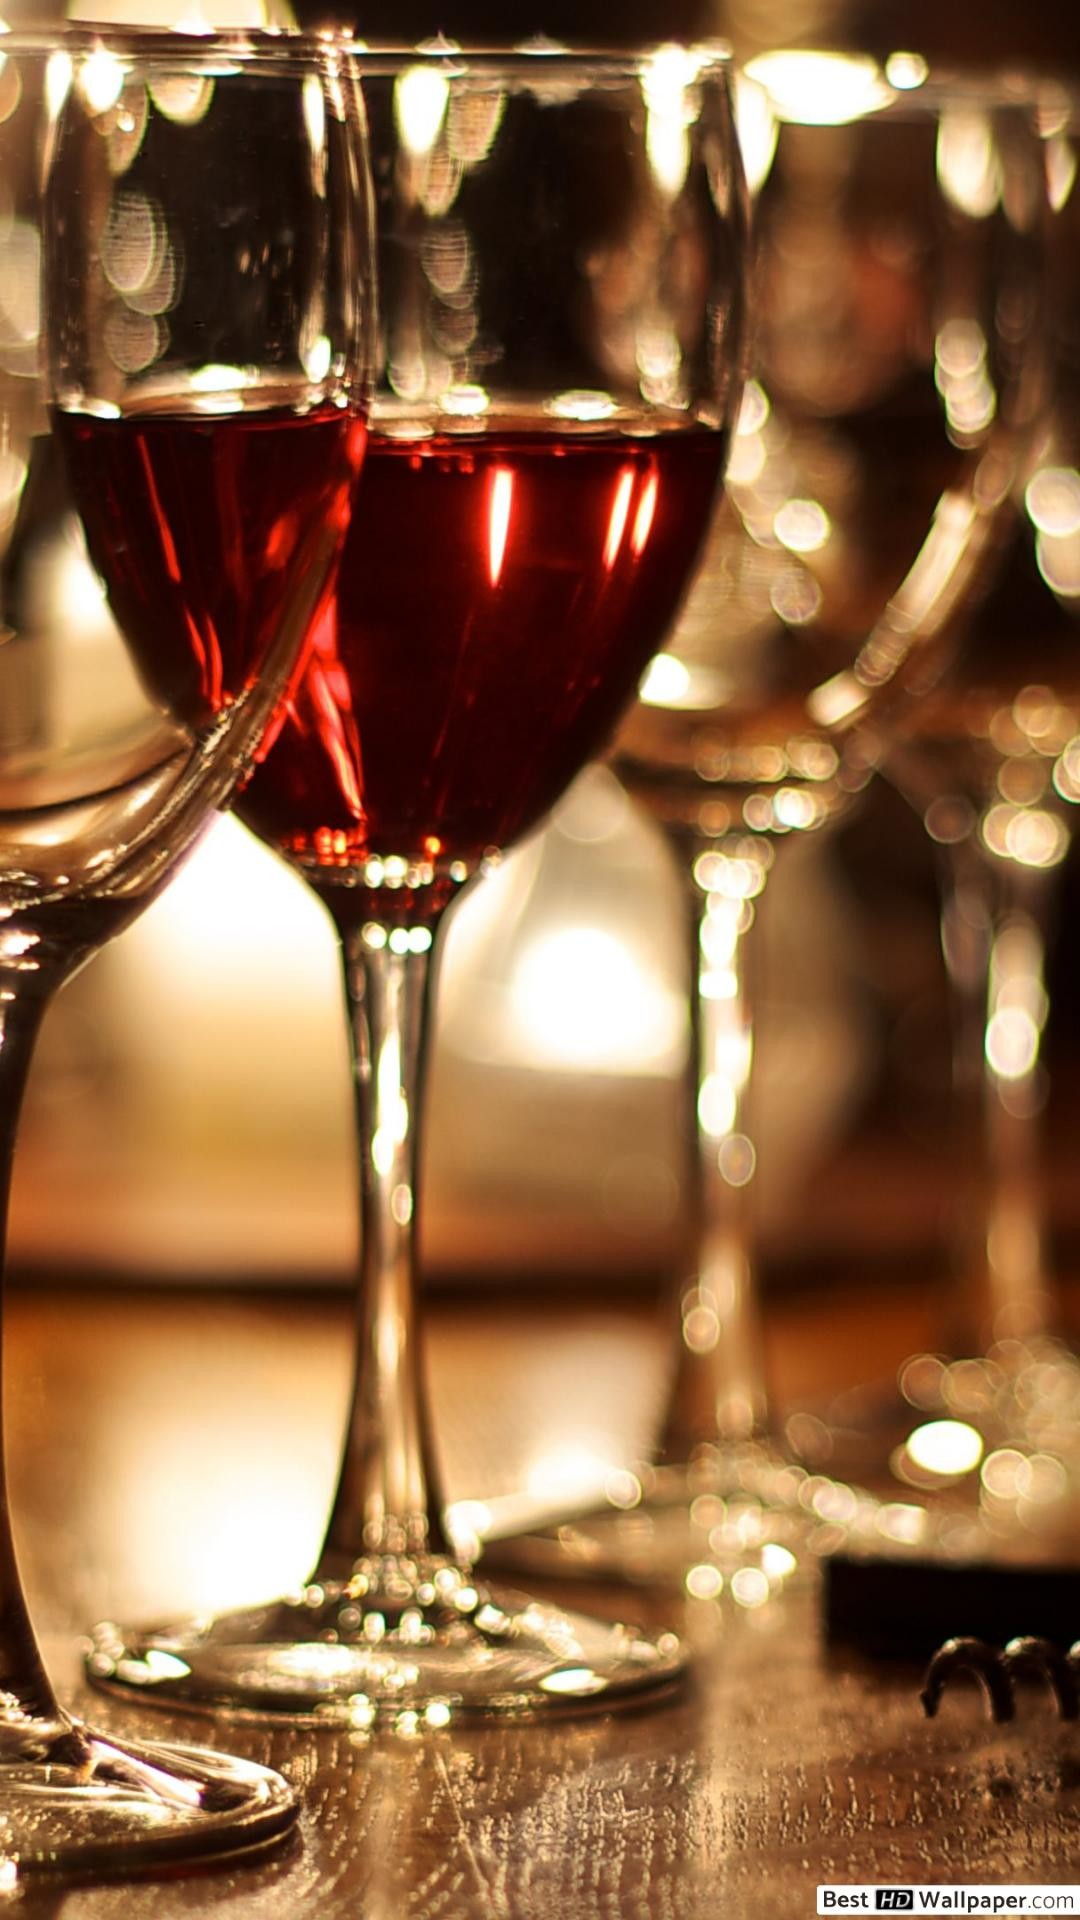 Red Wine Wallpaper 67 Images